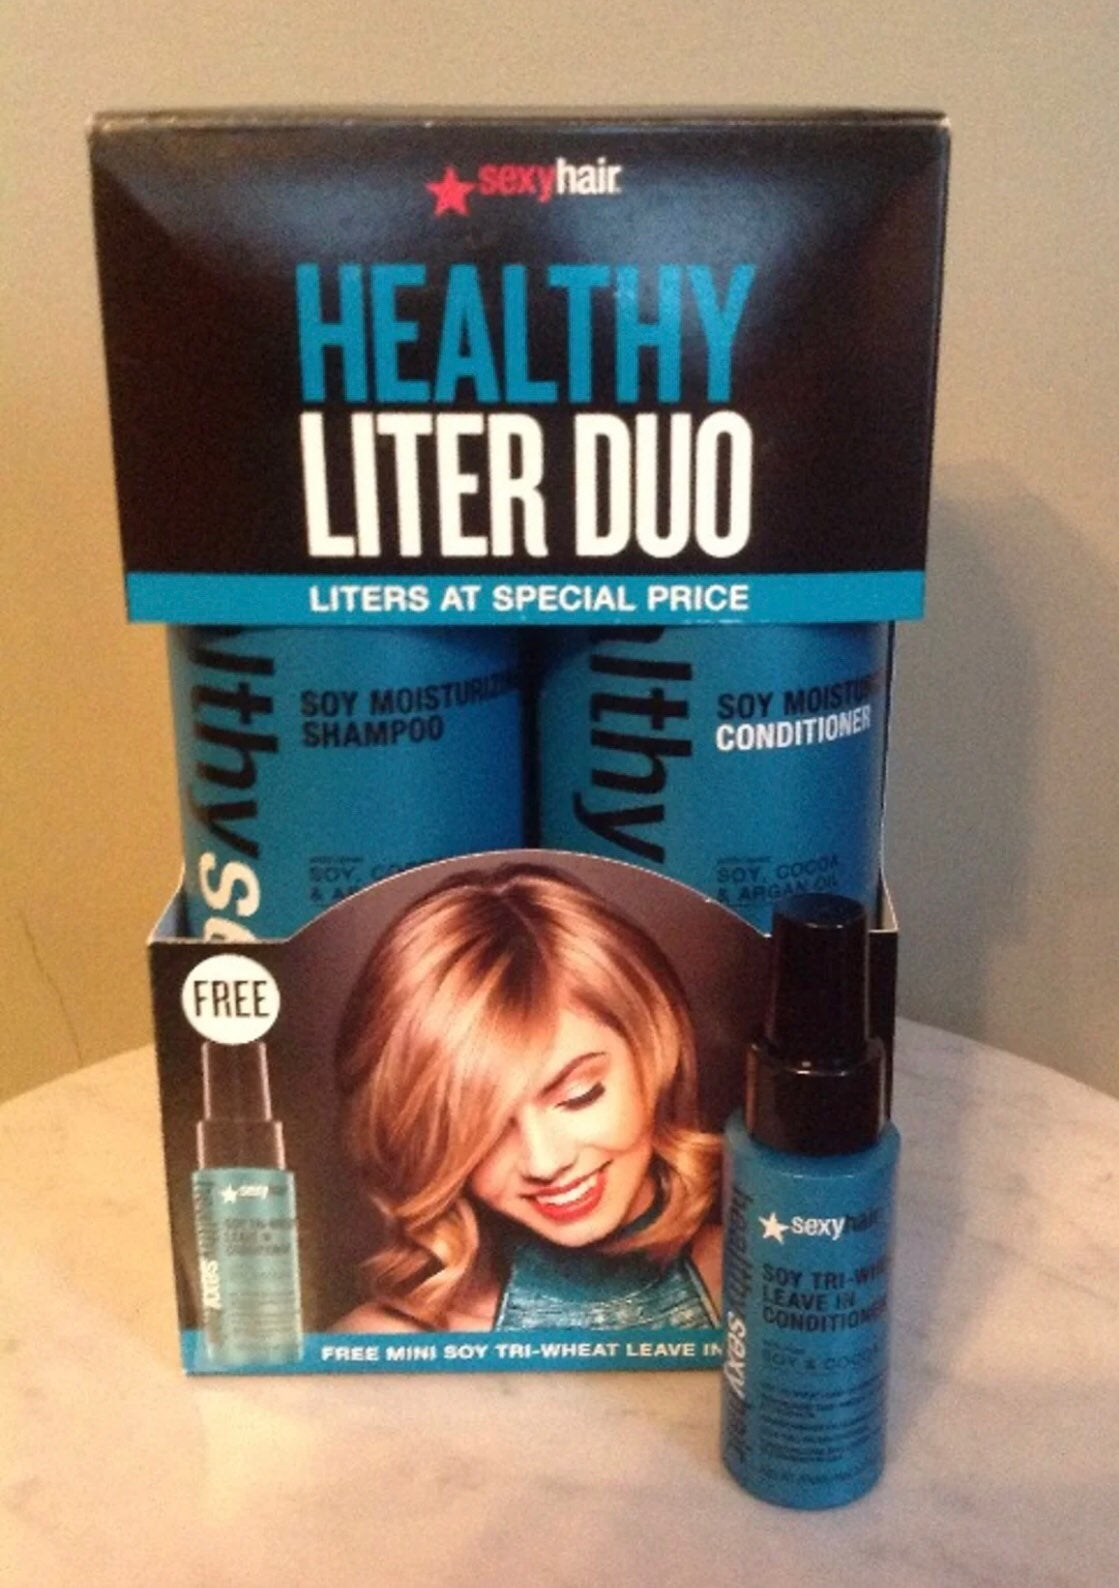 Sexy Hair Healthy Liter Duo